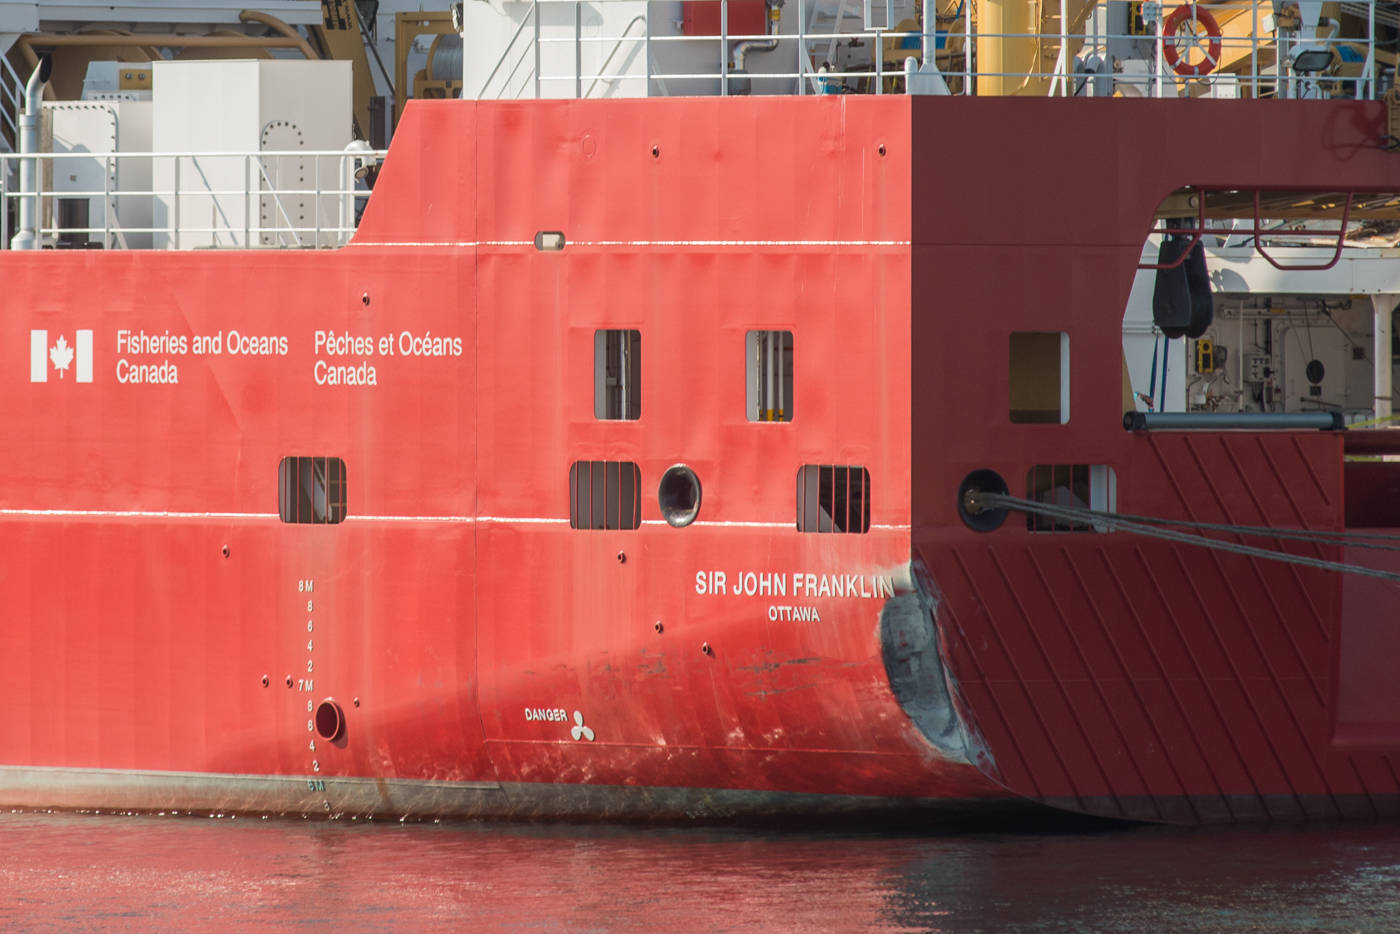 While the back corner of the Sir John Franklin vessel was visibly crunched, a spokesperson for Seaspan could not be immediately reached to confirm an estimate on the damage. (Keri Coles/News staff)